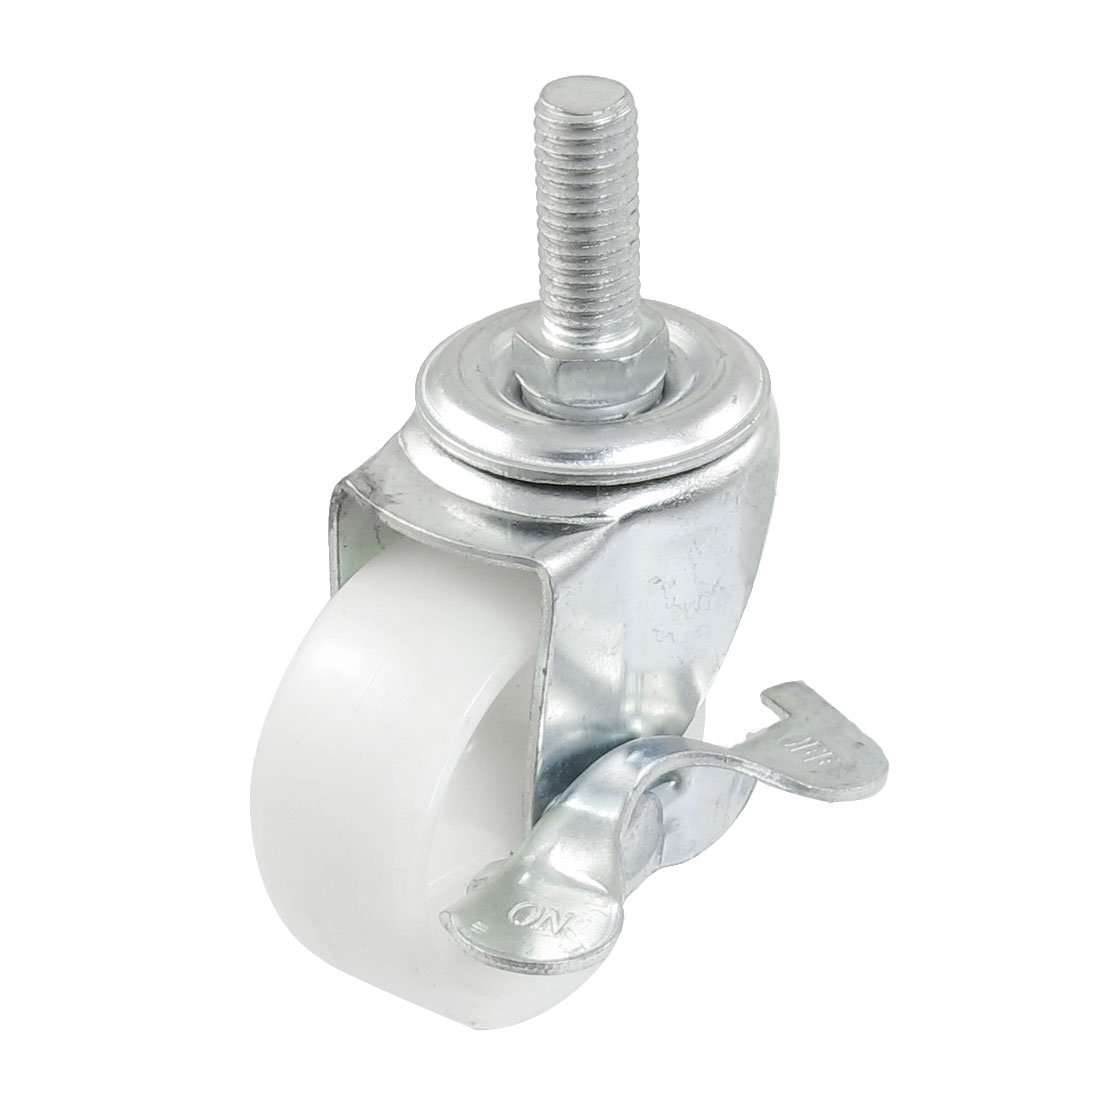 "2"" Single Wheel Side Brake 9.9mm Threaded Stem Swivel Nylon Caster White"